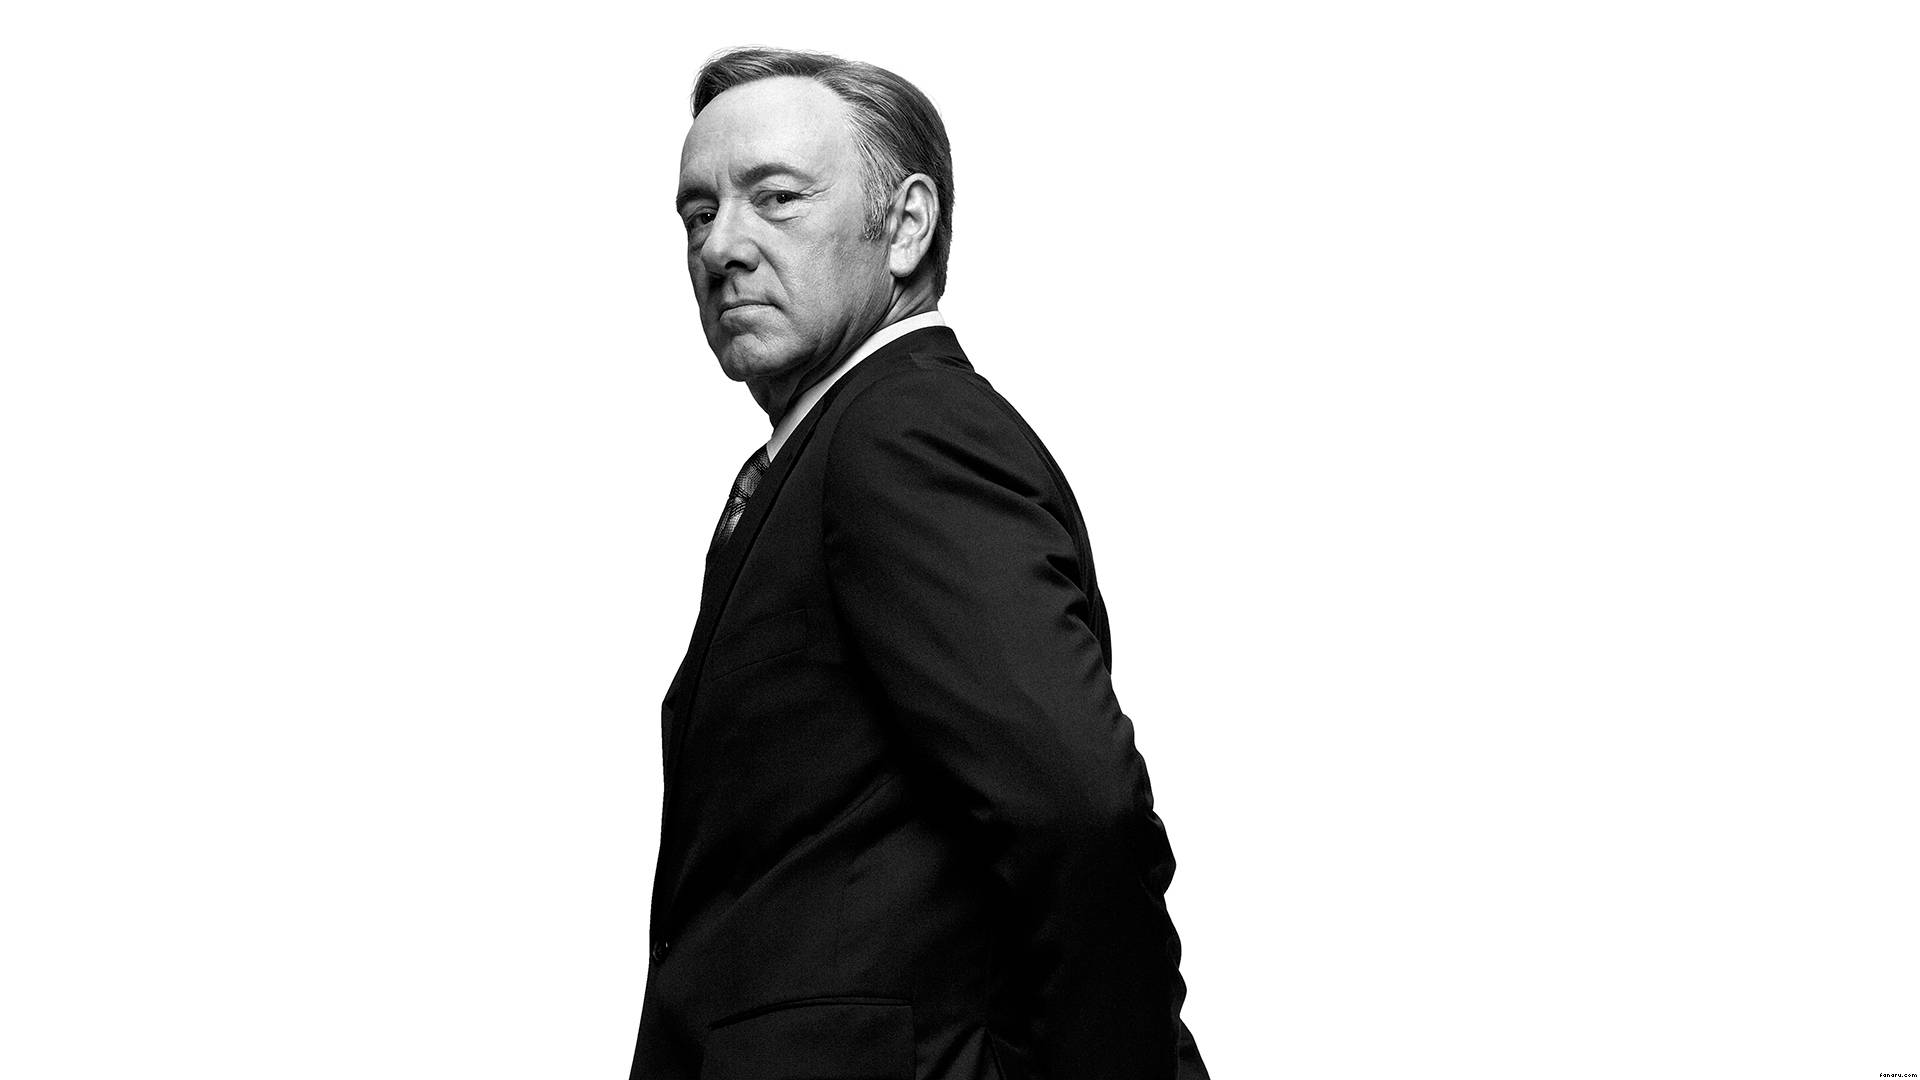 Kevin-Spacey-House-of-Cards-HD-Wallpaper.jpg